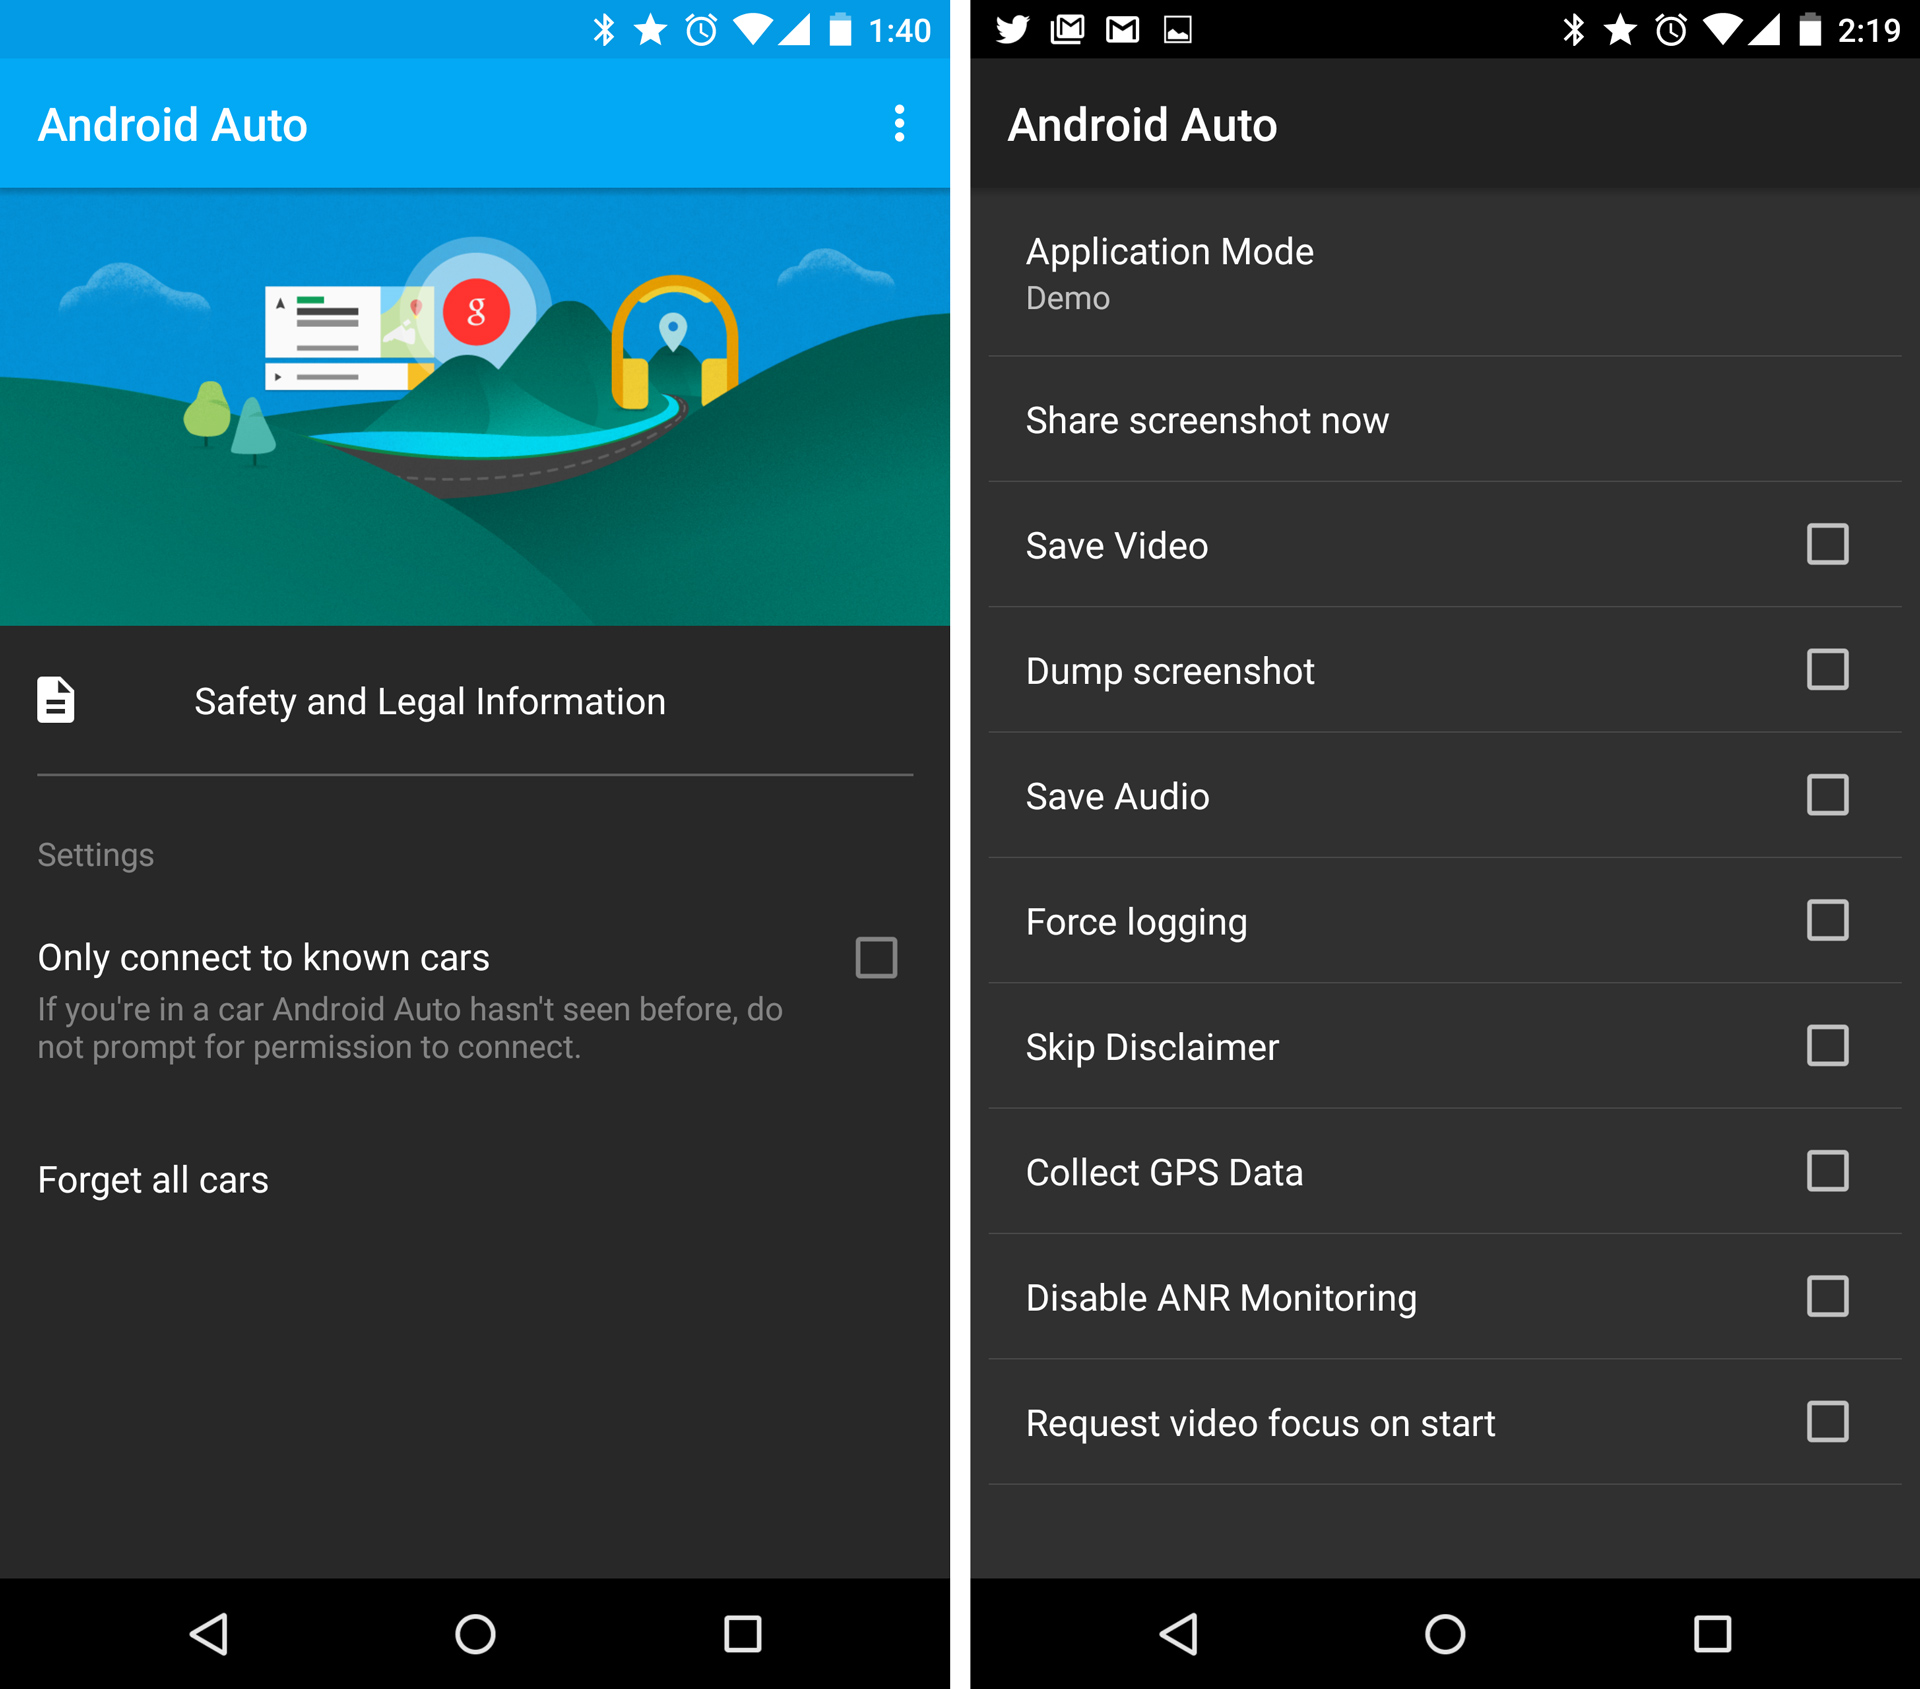 Left: The Android Auto app. Right: The developer menu.